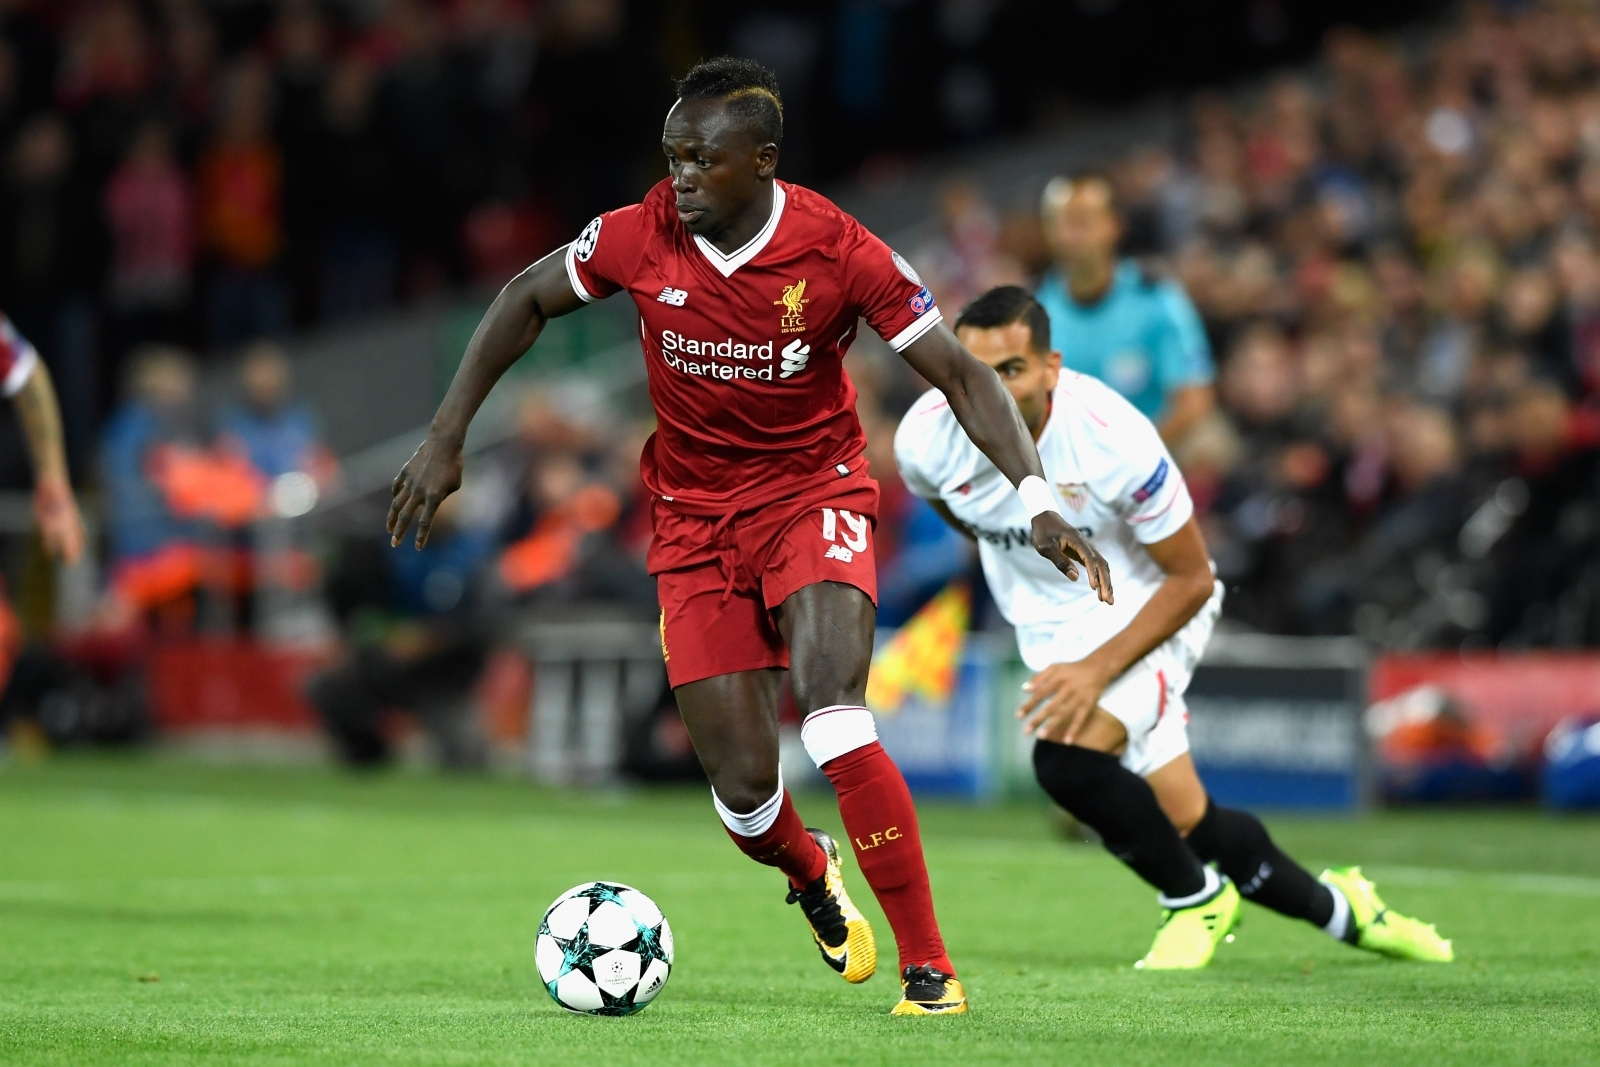 Jurgen Klopp makes honest admission over Liverpool star Sadio Mane's injury